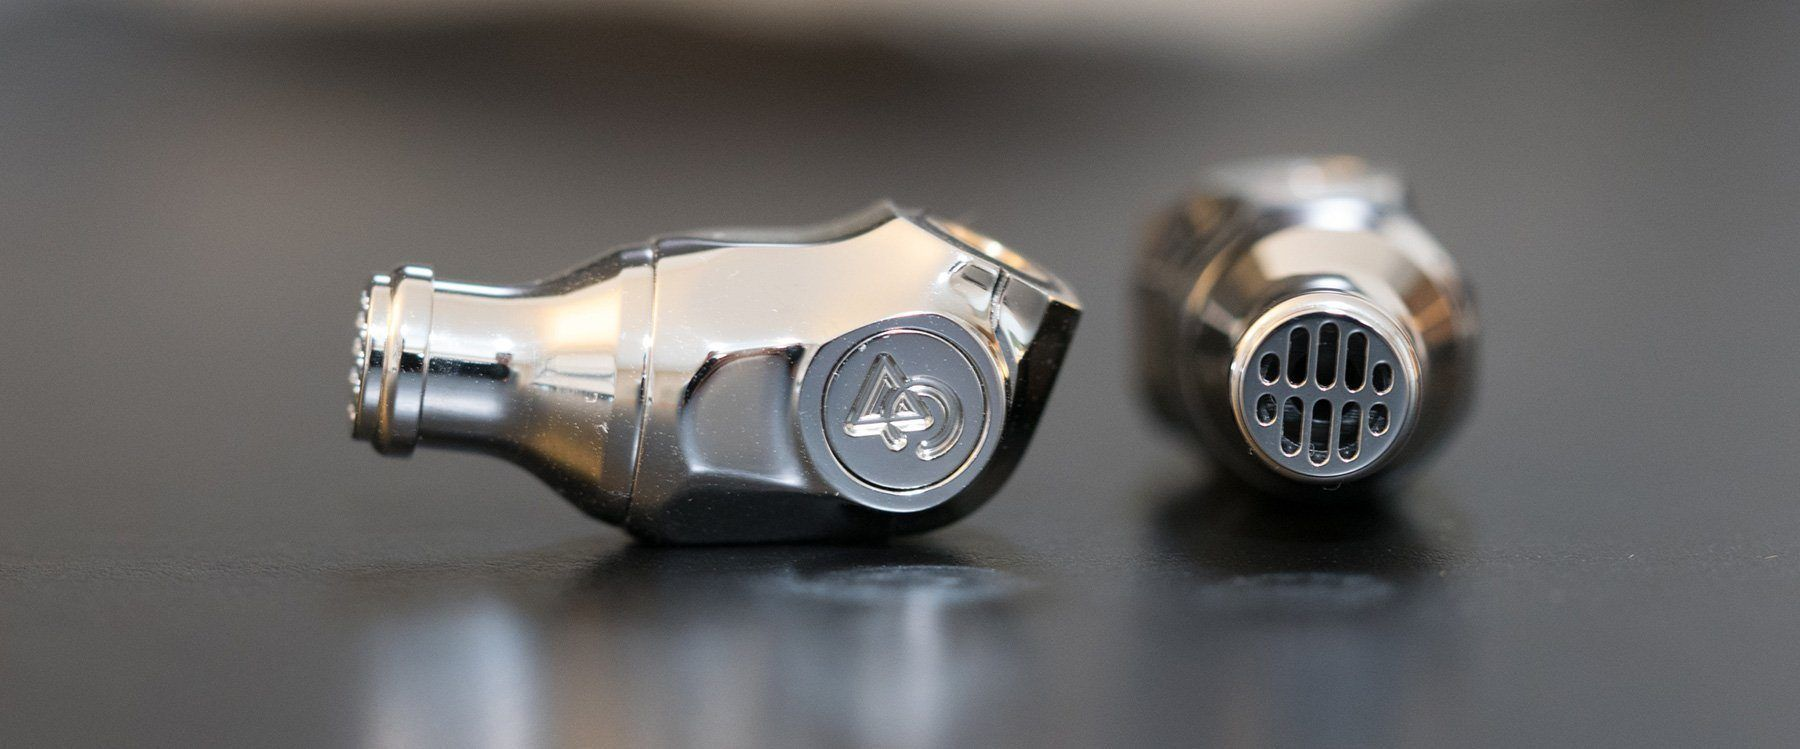 Campfire Audio Comet - In Ear Monitors - Review